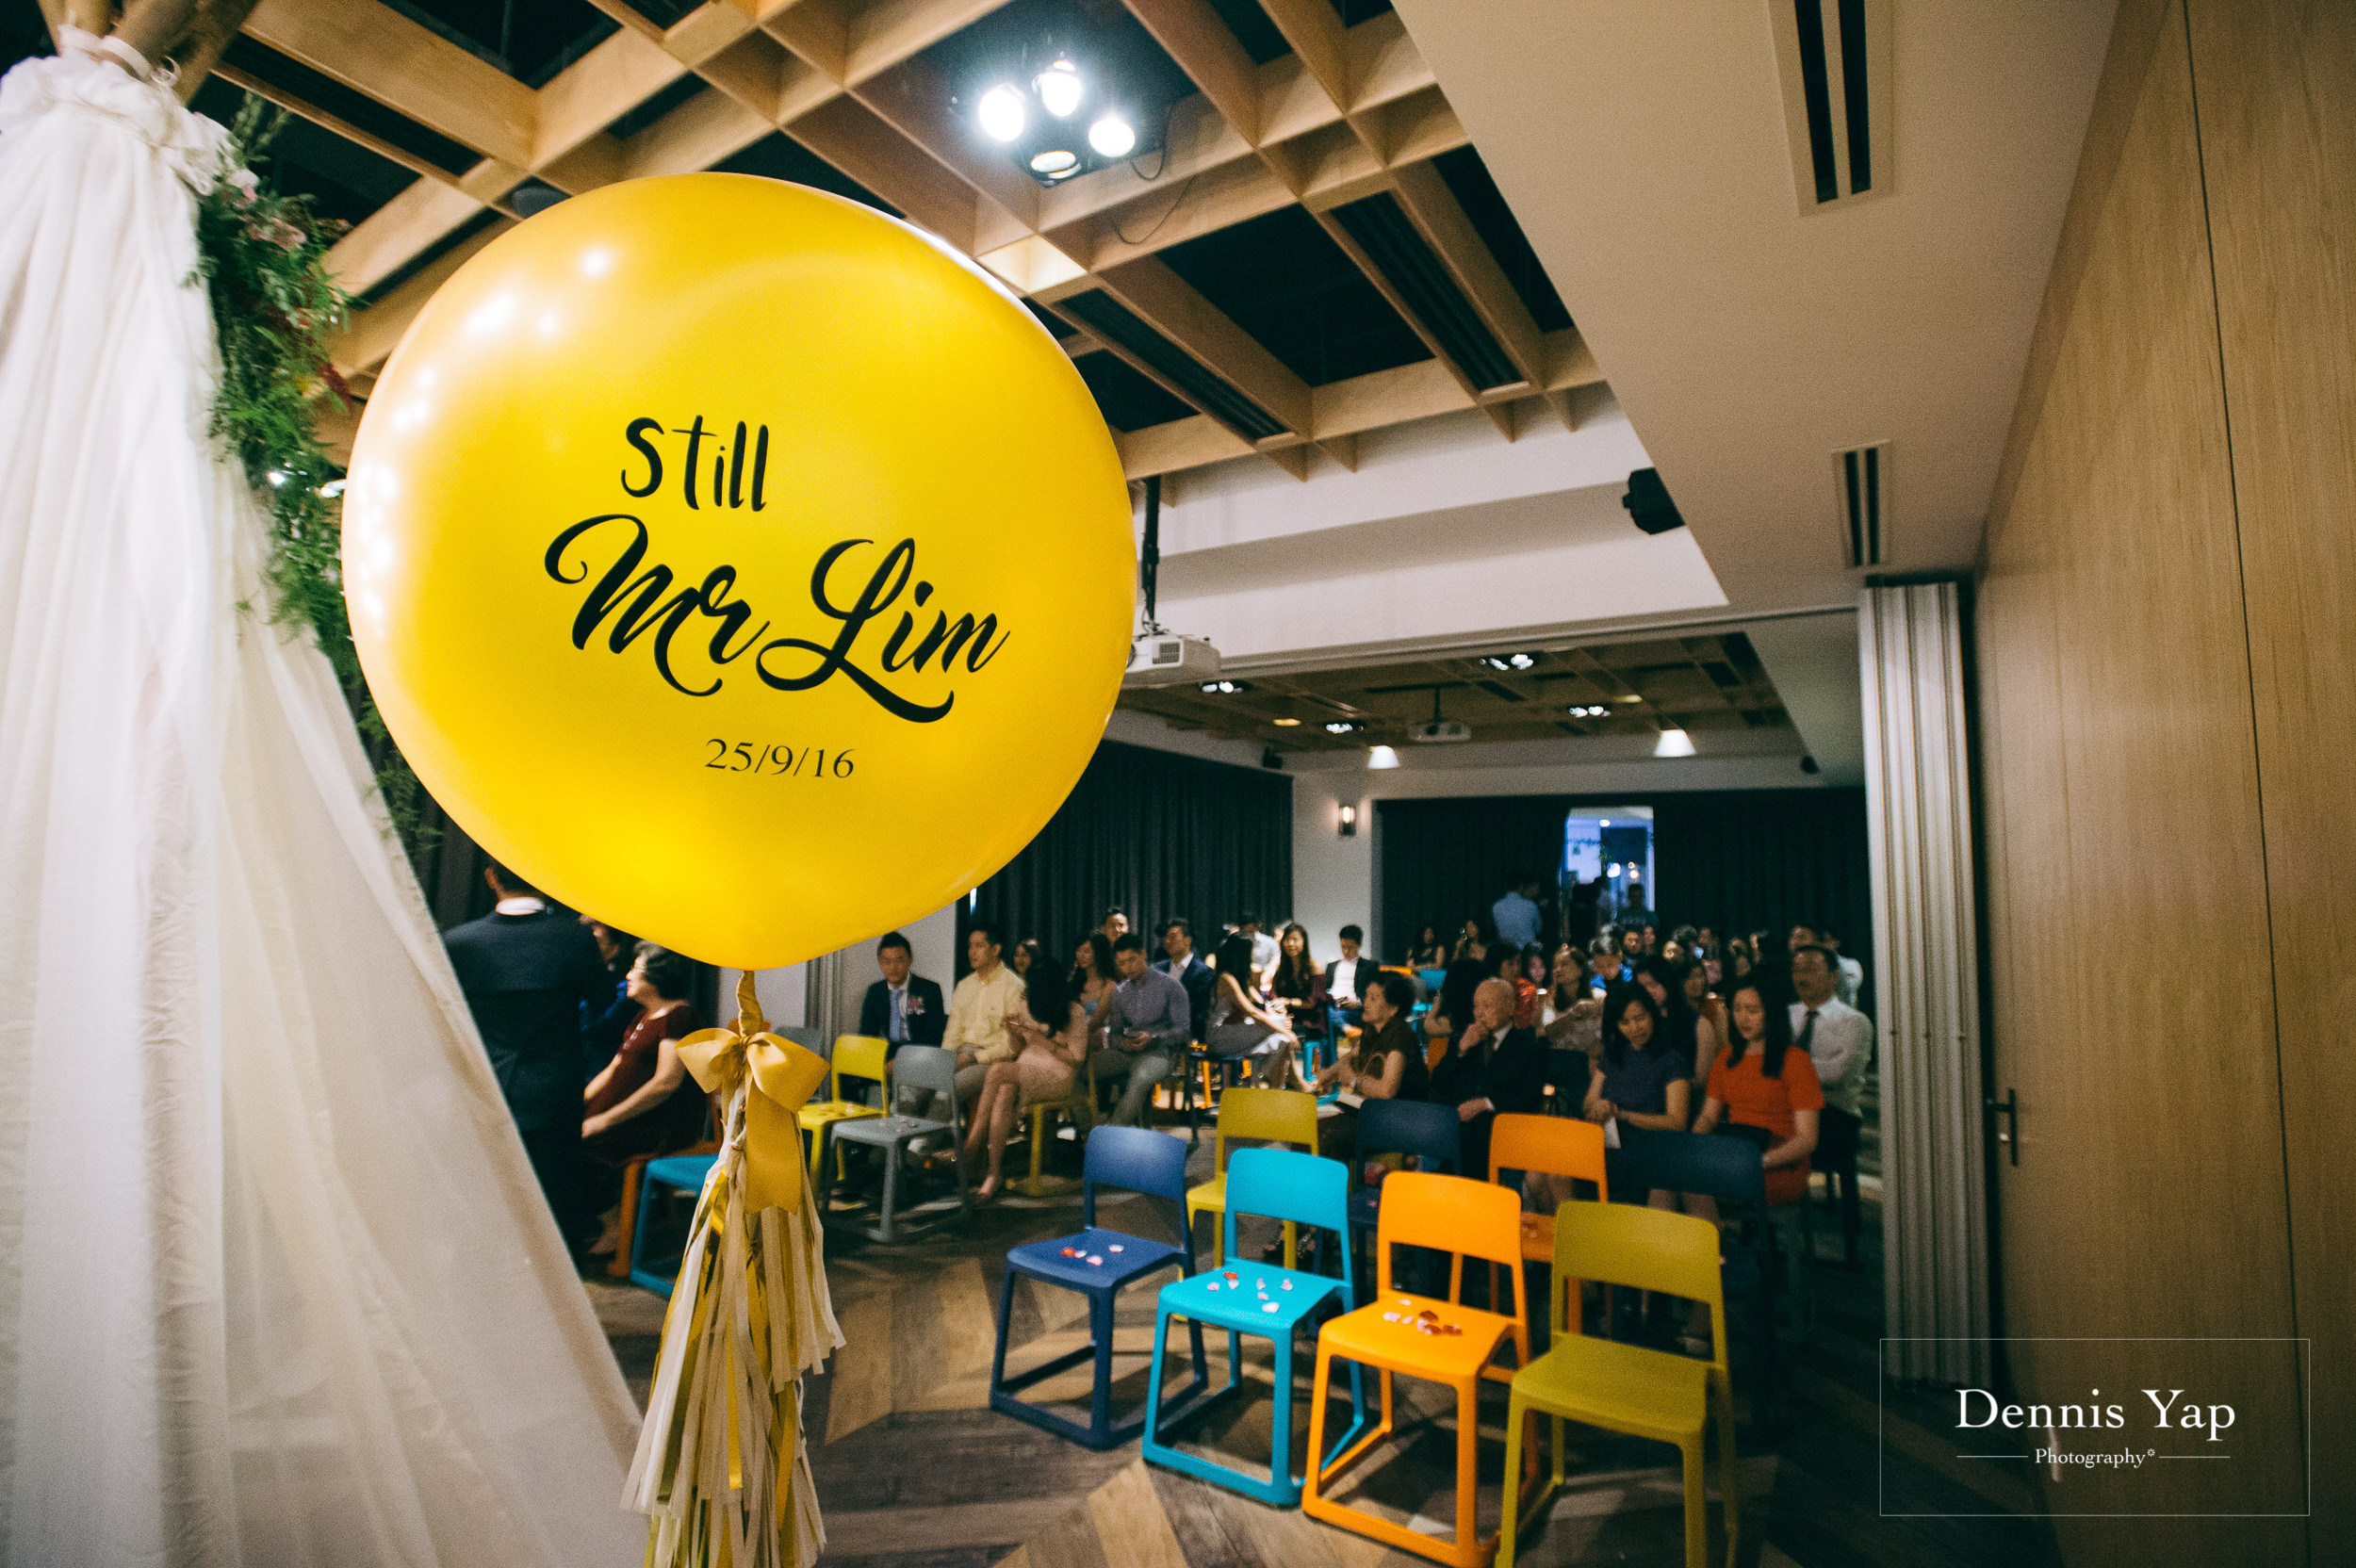 ser siang sze liang rom registration of marriage KL journal hotel dennis yap photography-7.jpg